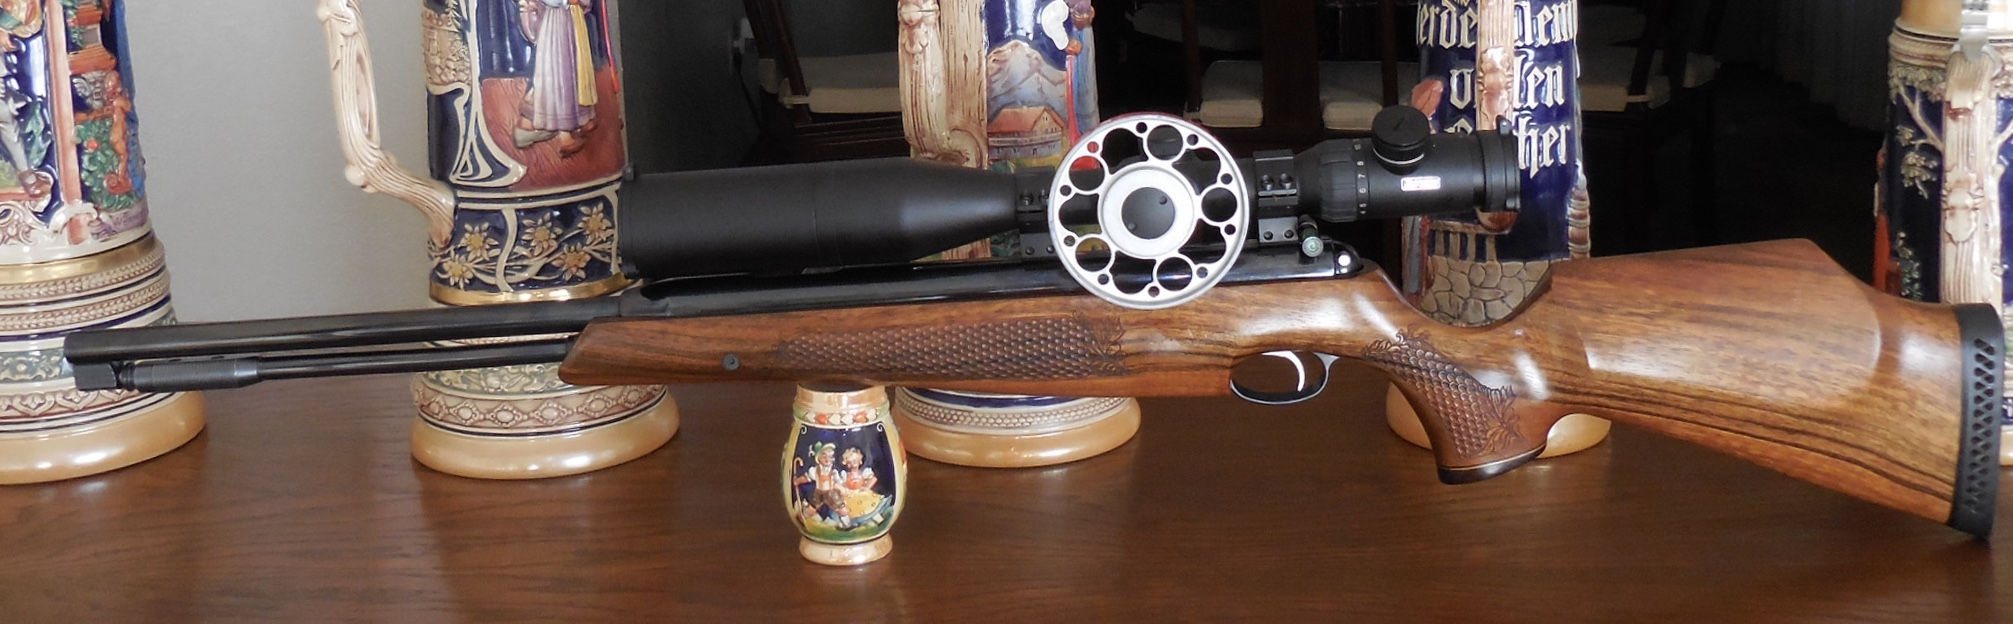 Best Tune for TX200 for Field Target, Hunter Division